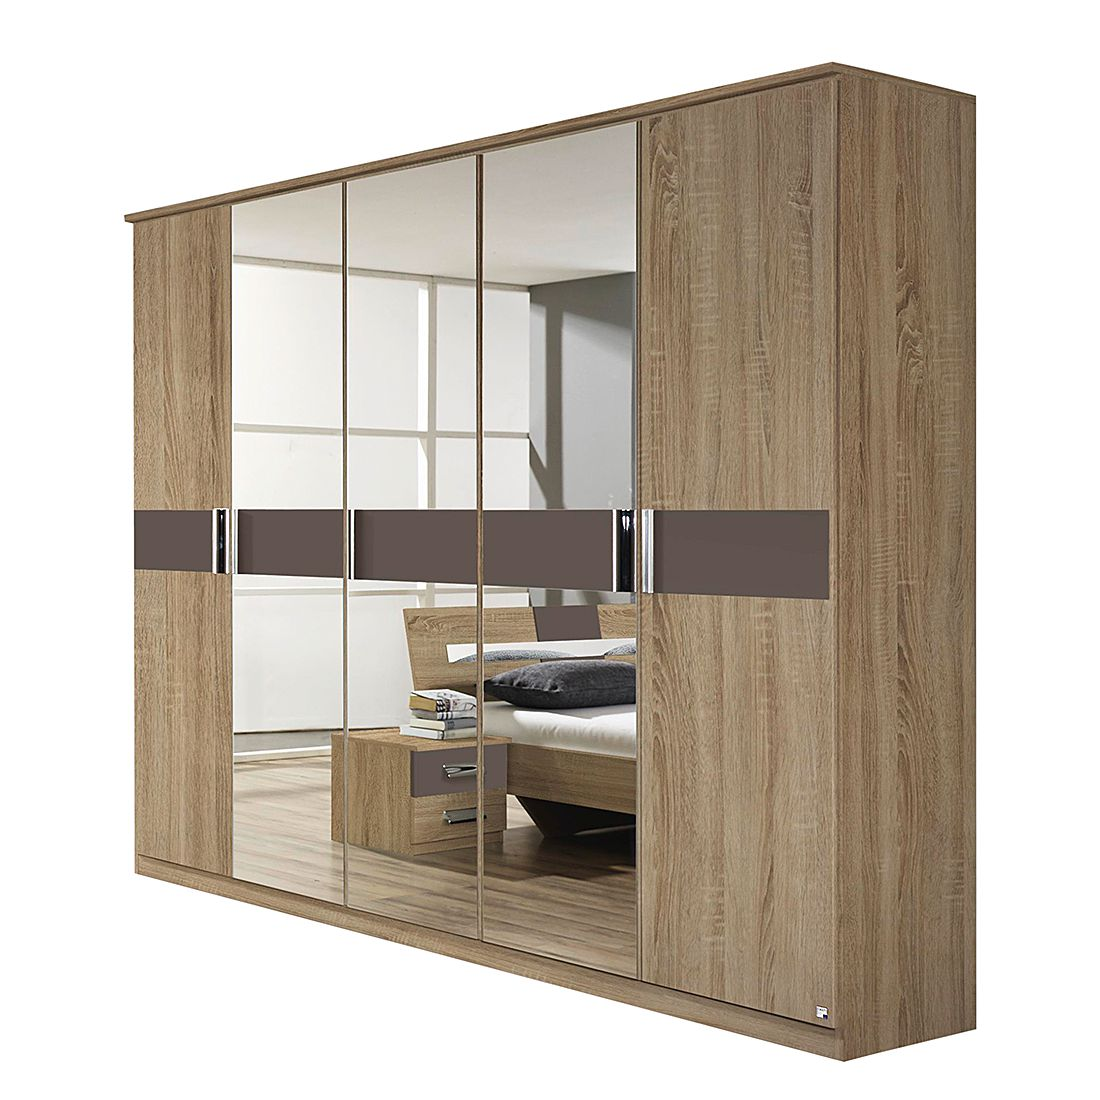 dreht renschrank sonoma eiche sonoma lavagrau 271cm breit. Black Bedroom Furniture Sets. Home Design Ideas